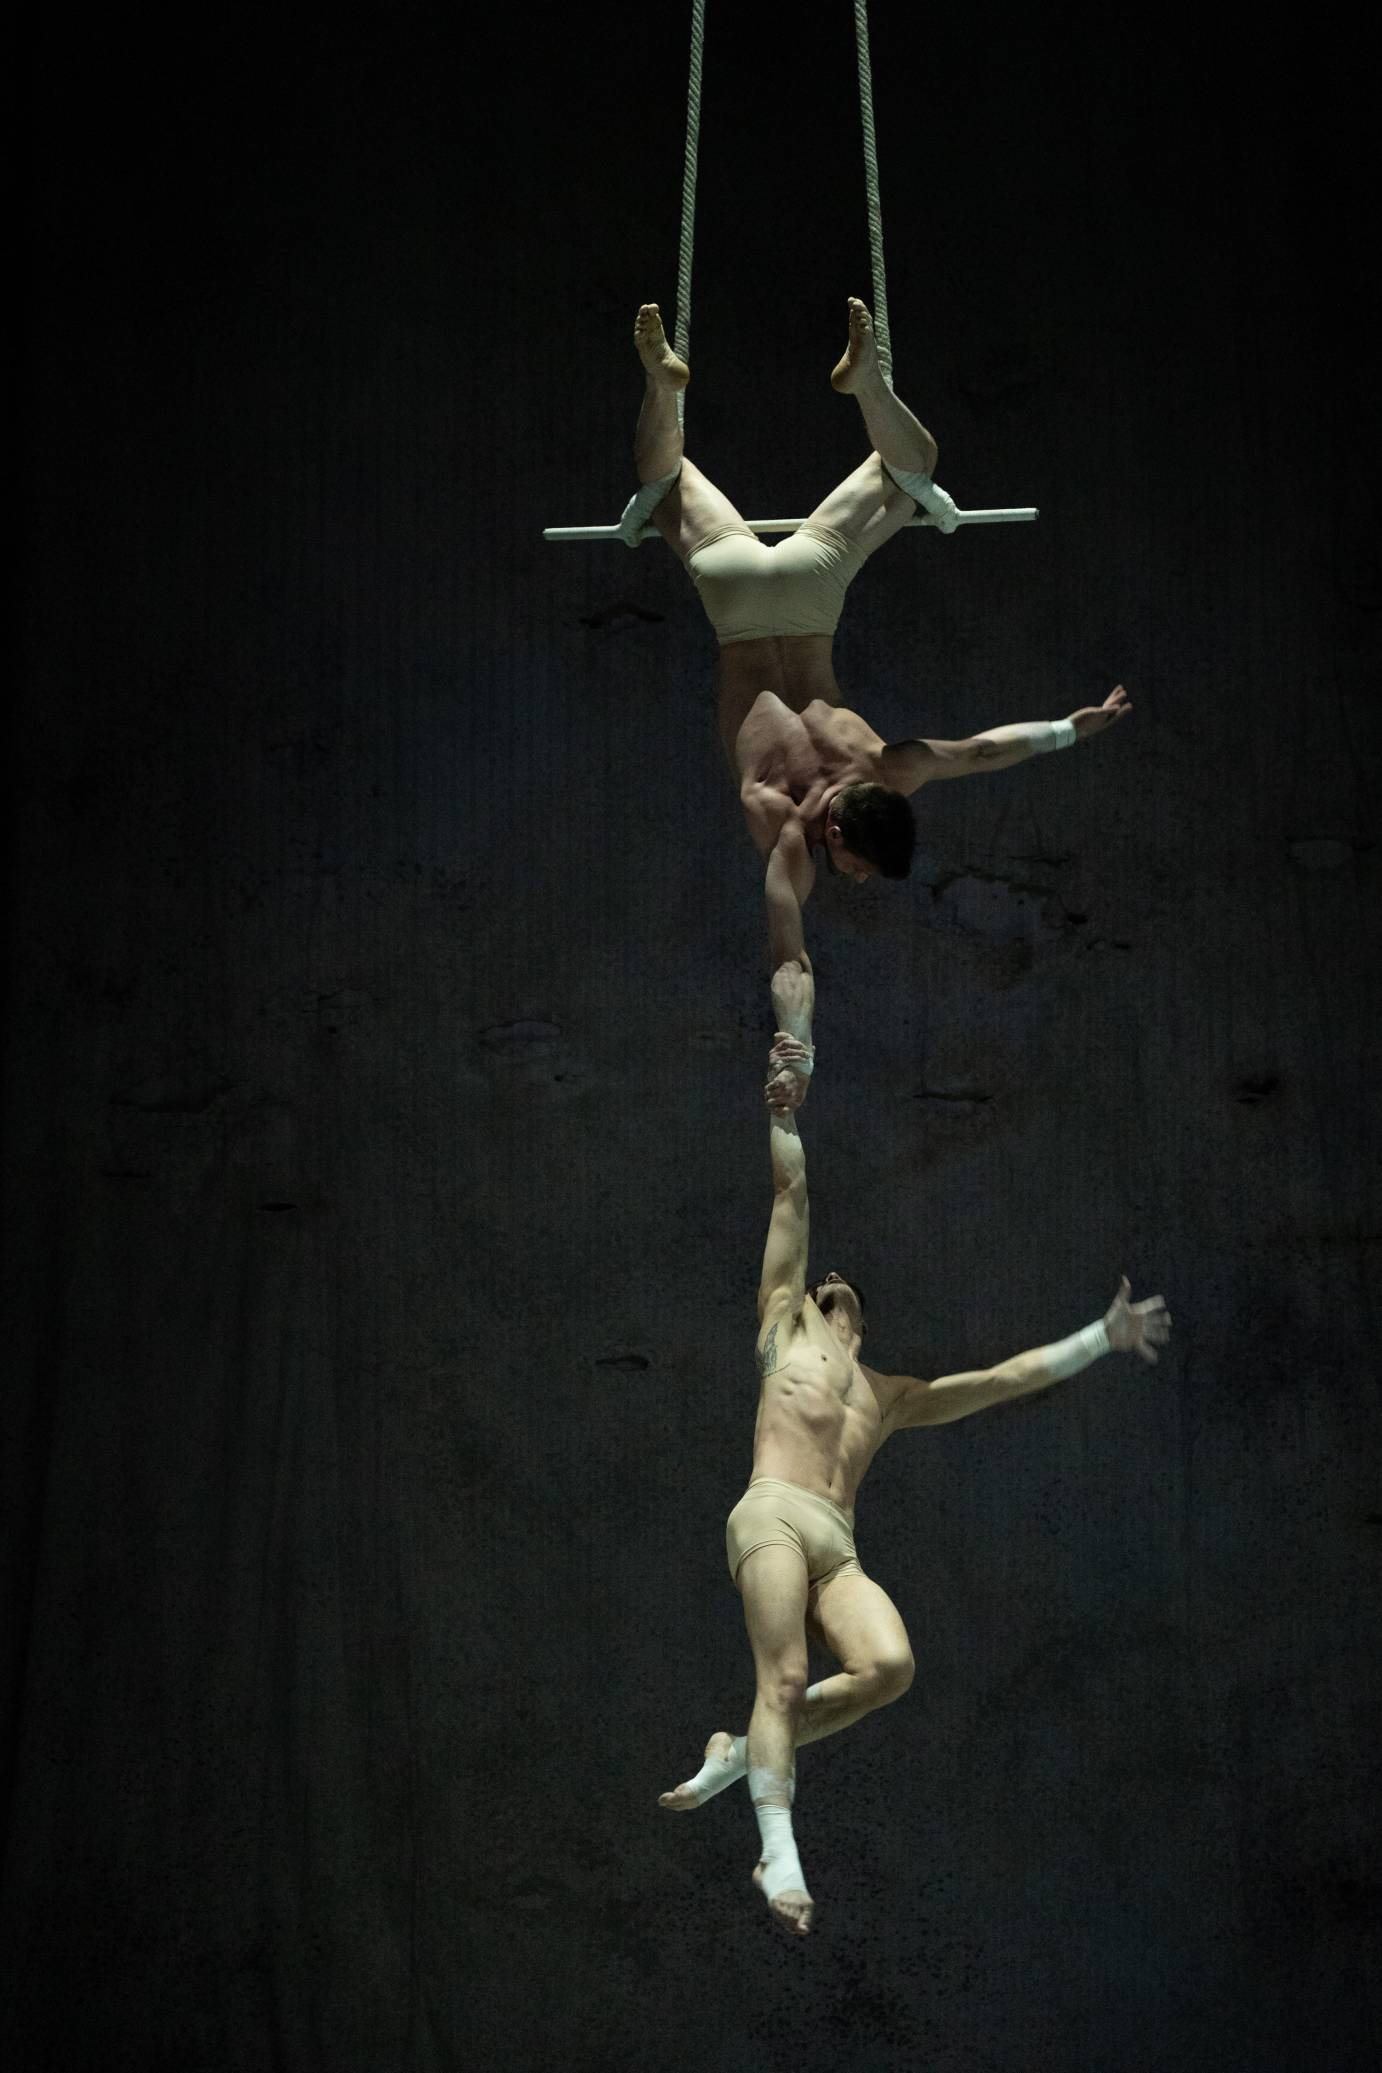 One man hangs from a trapeze holding another man with one hand